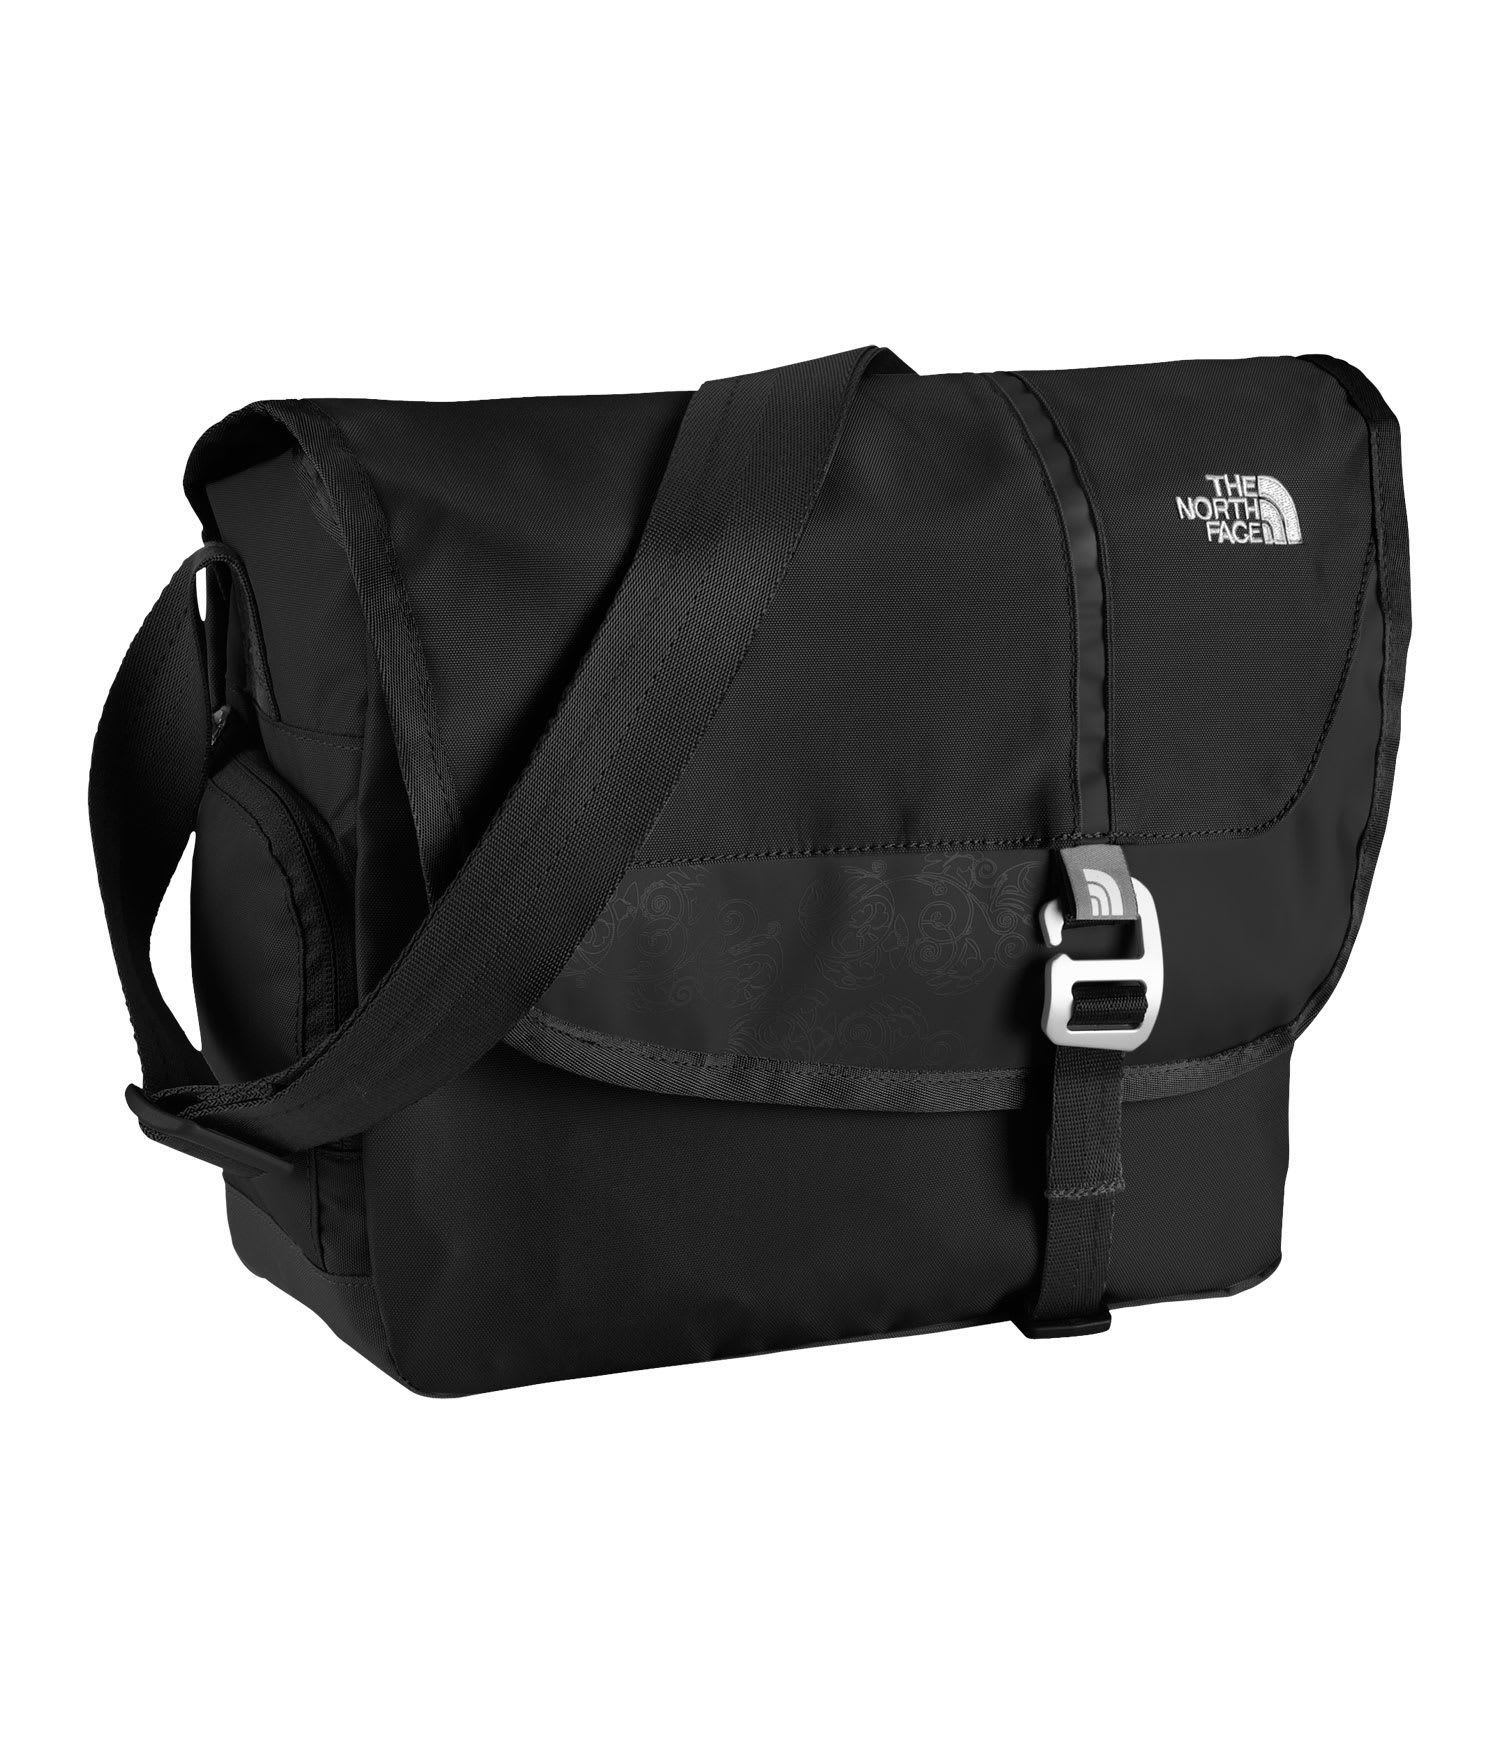 north face messenger bag review